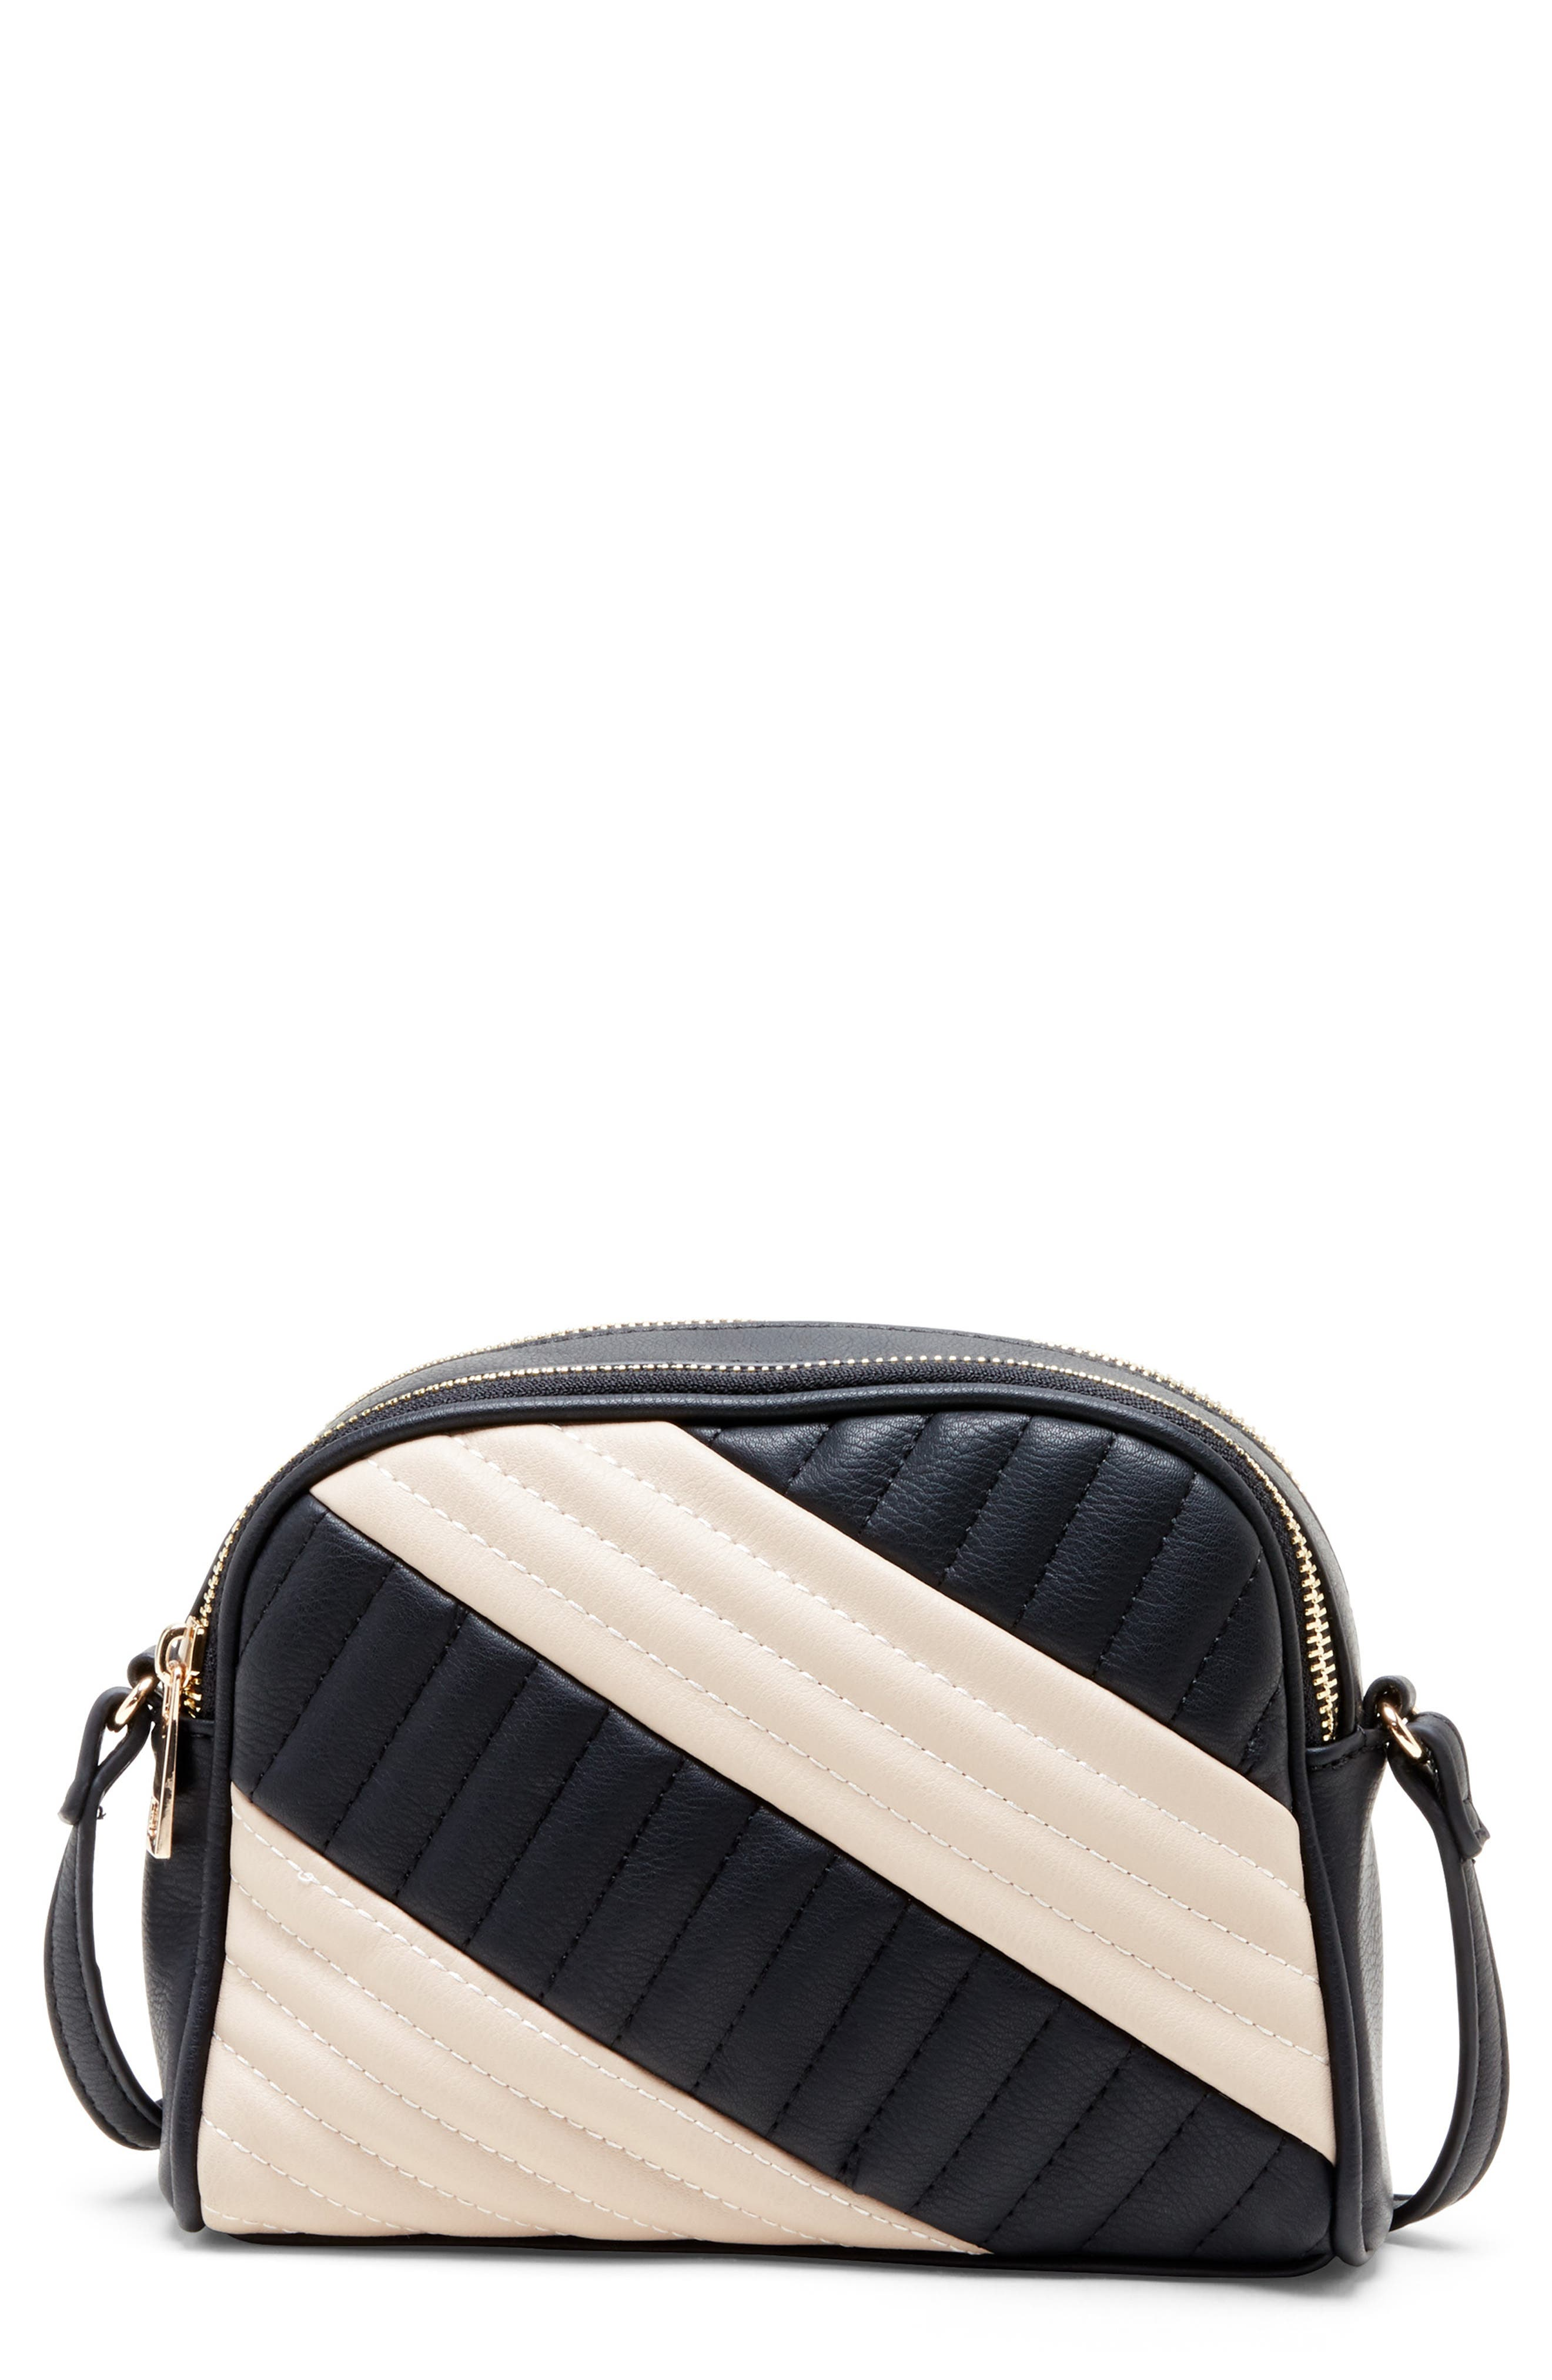 Linza Faux Leather Crossbody Bag,                             Main thumbnail 1, color,                             BLACK/ CREAM